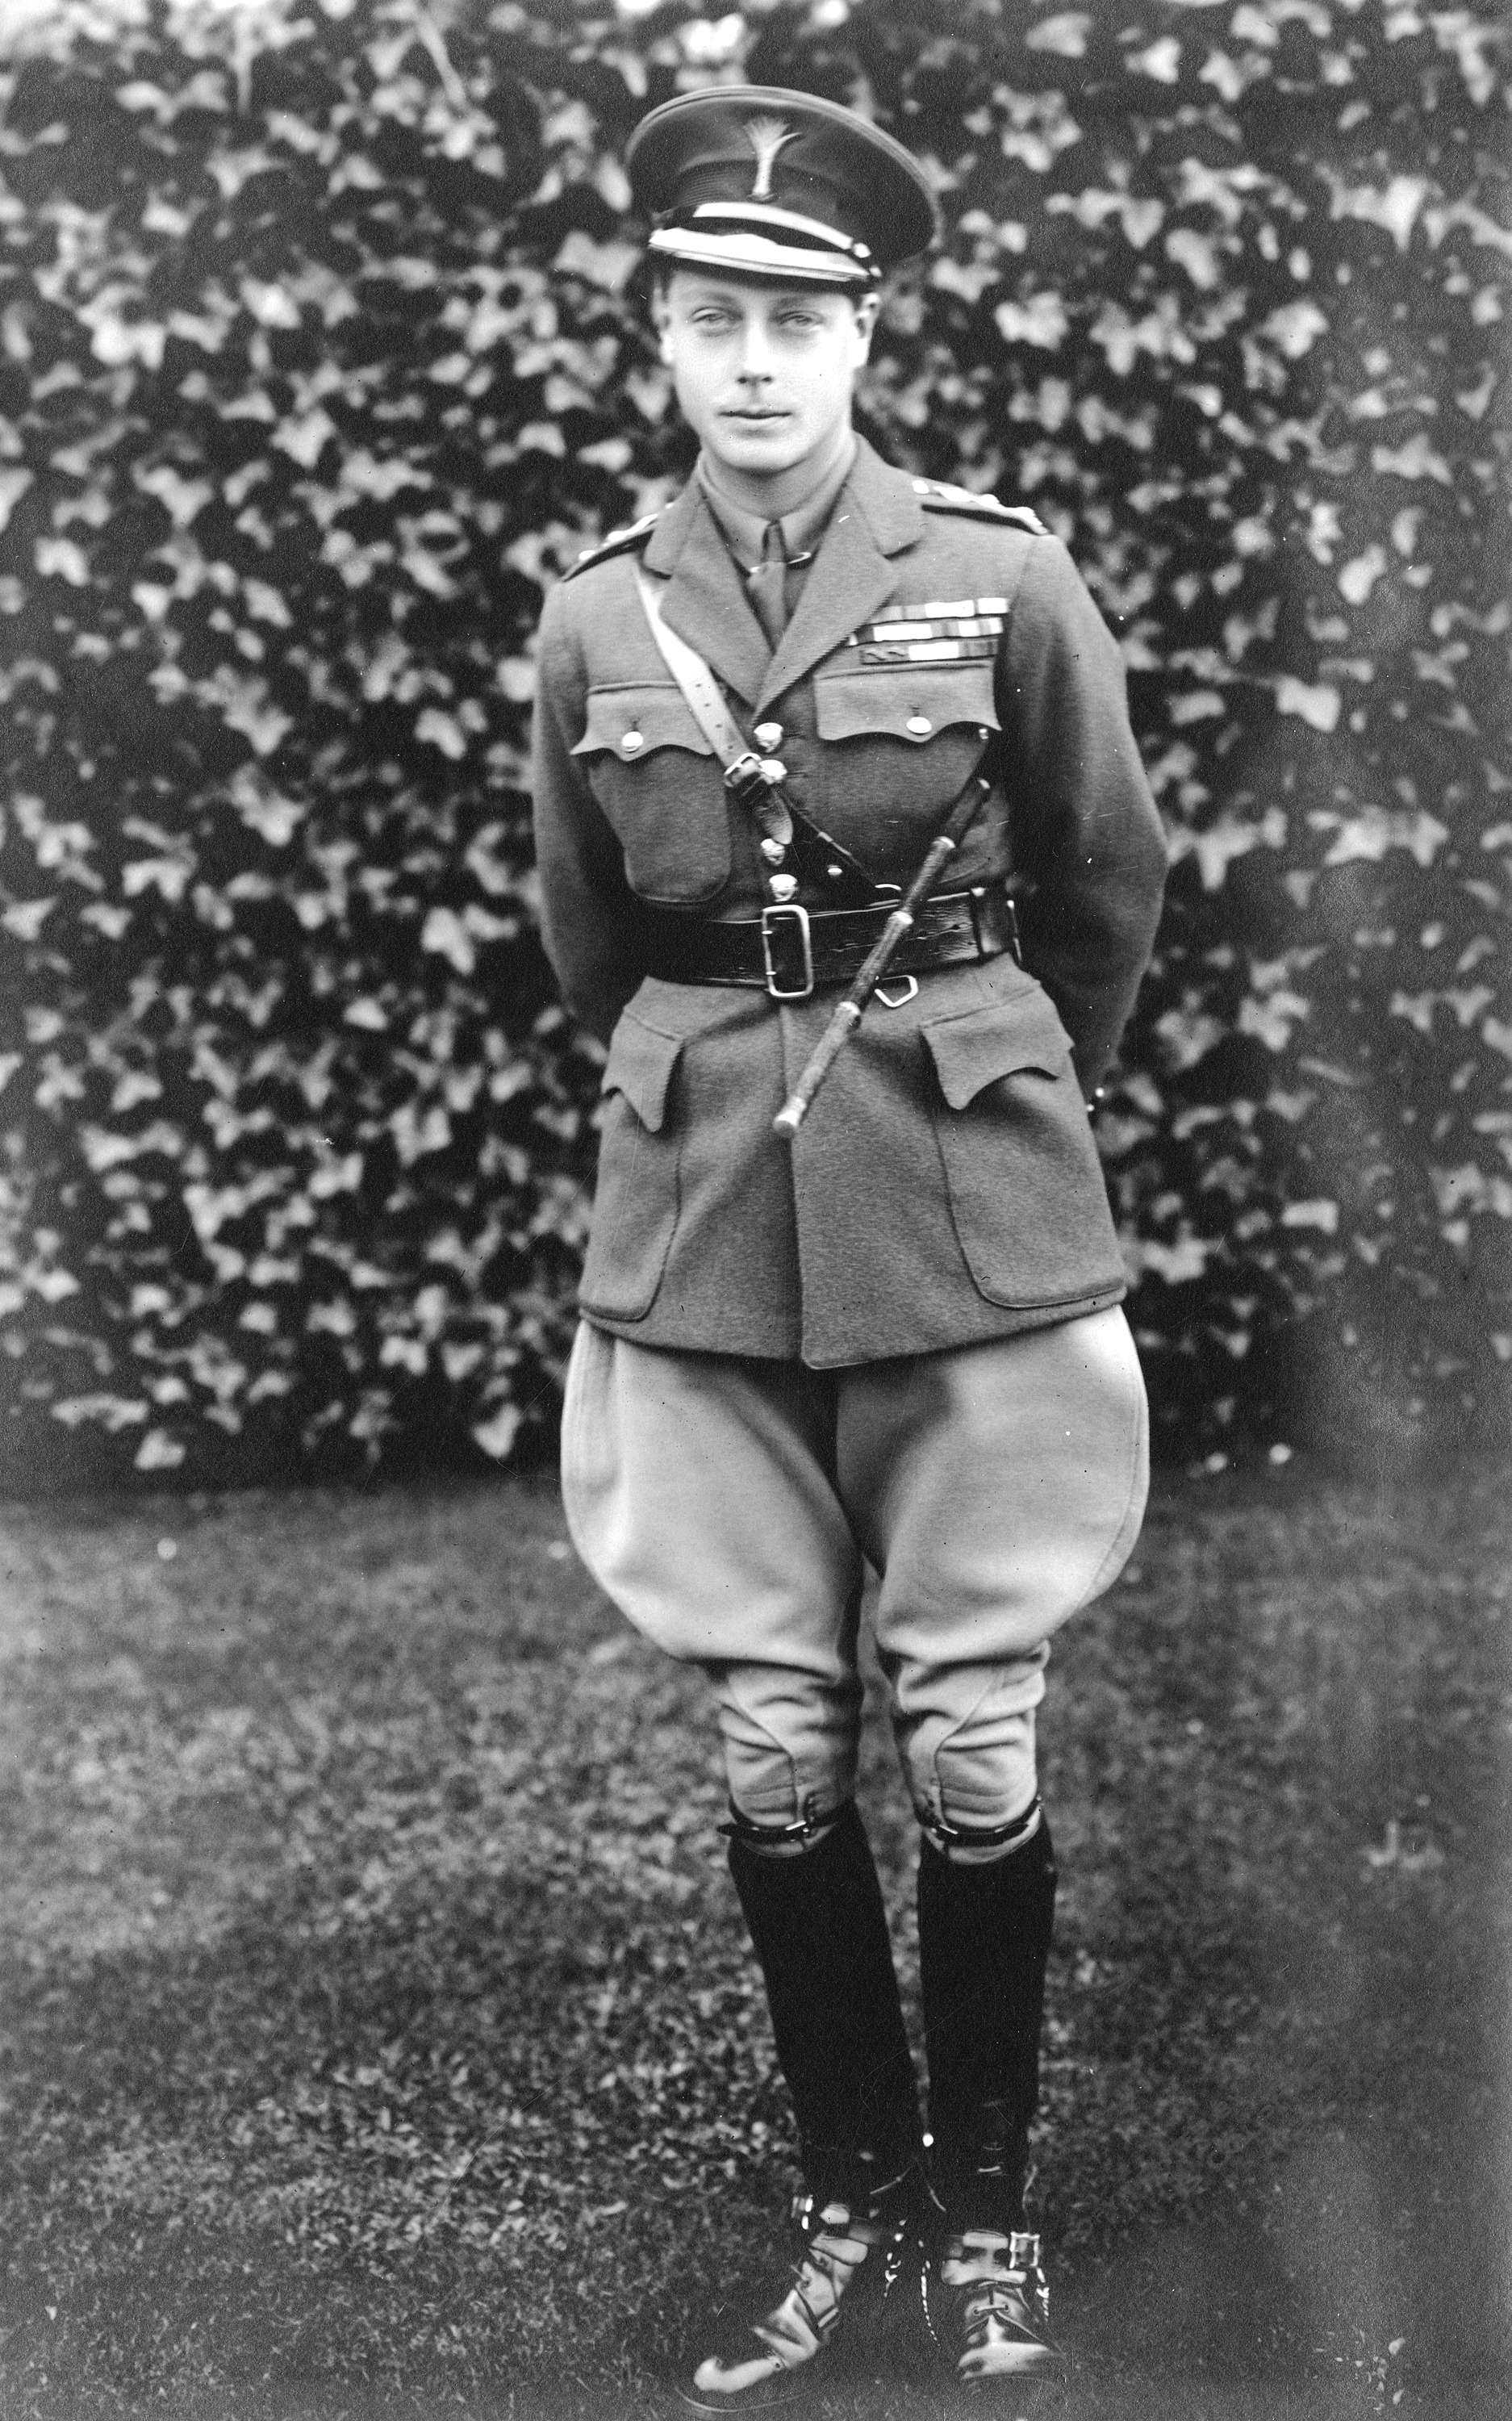 The Prince of Wales (later King Edward VIII) in military clothing in Vancouver in 1919 (Public domain)